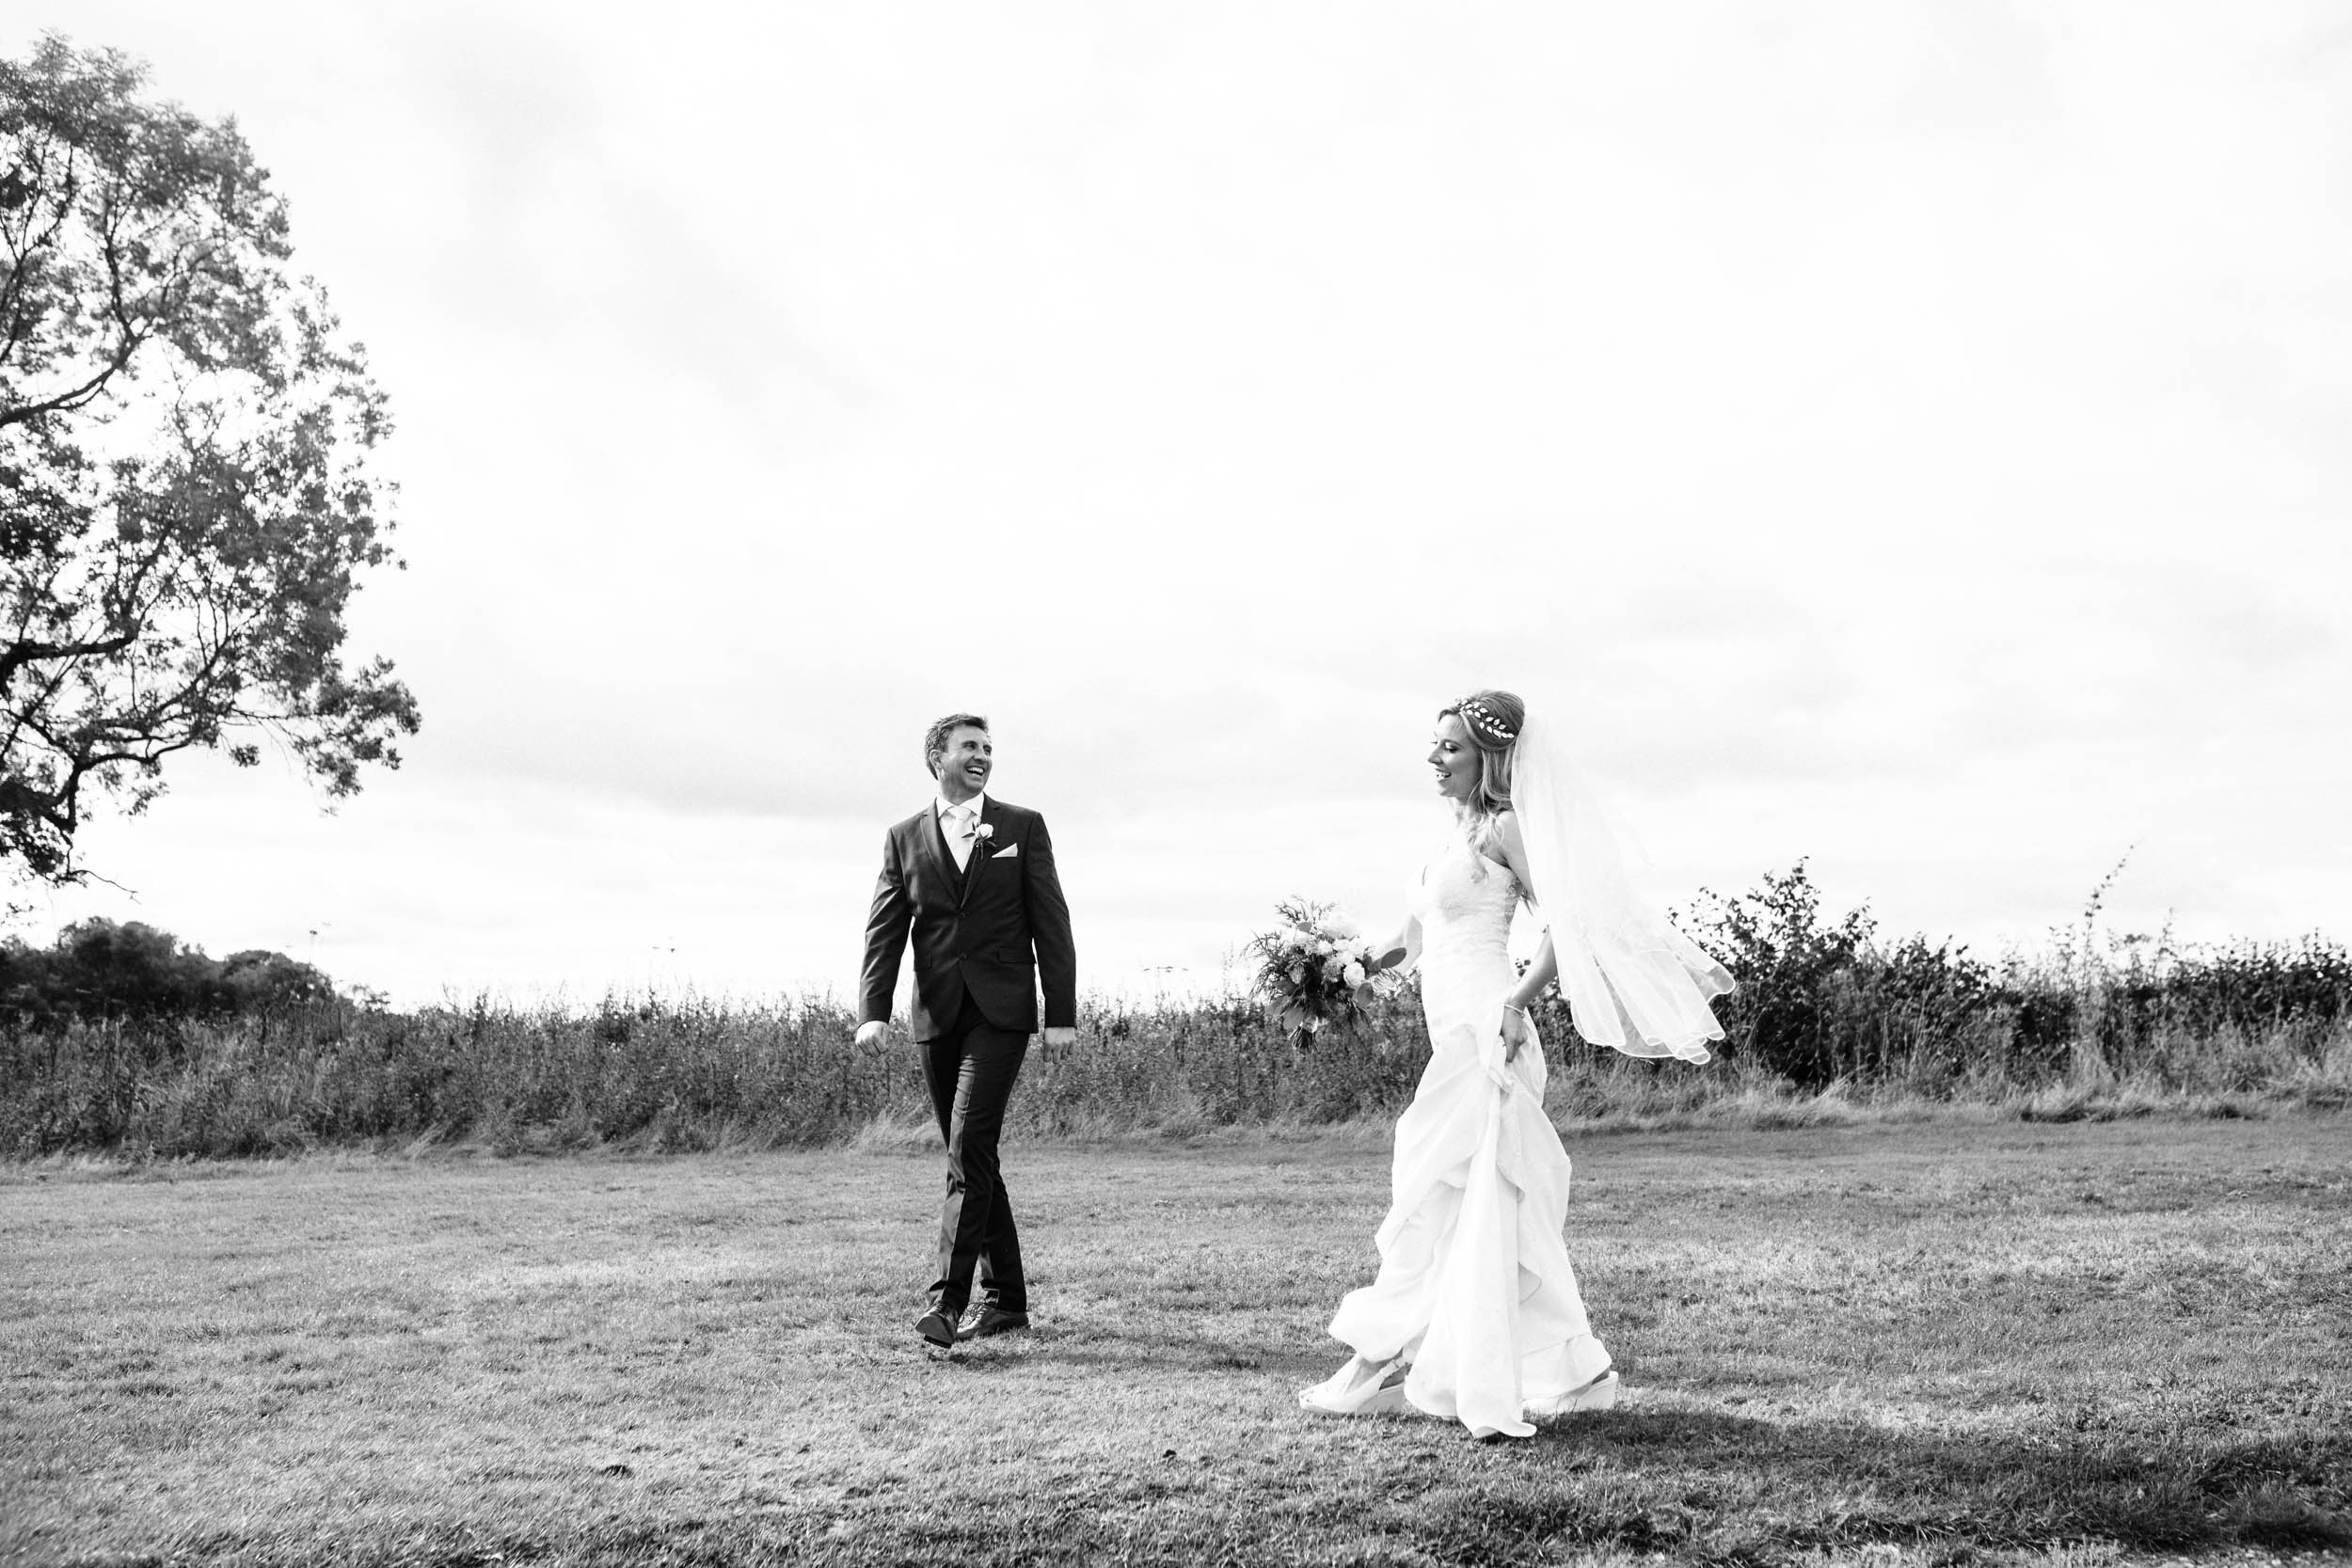 Alex_Sedgmond_Photography-SouthWalesWeddingPhotography-Wedding-Photographer-Cardiff-Chester-Pryors Hayes Golf Club-chesire-weddingphotography-fionaandvince2-3.jpg